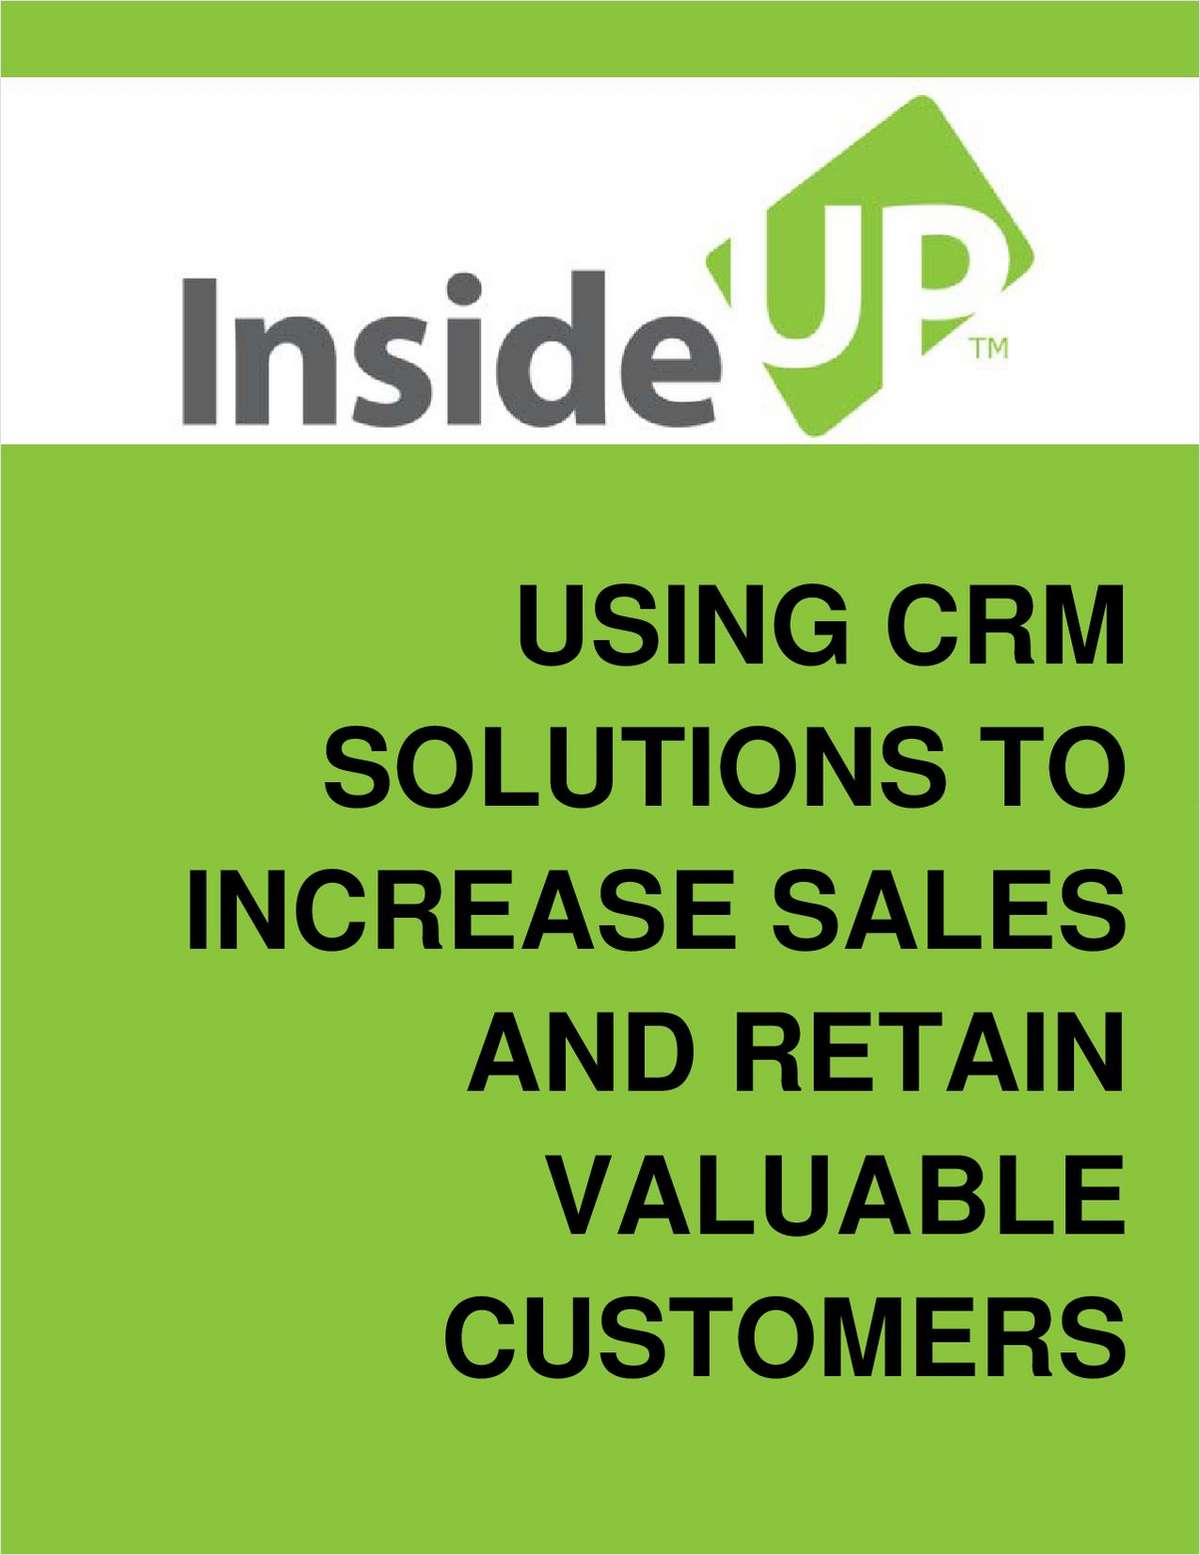 Tested CRM Solutions to Increase Sales and Retain Valuable Customers